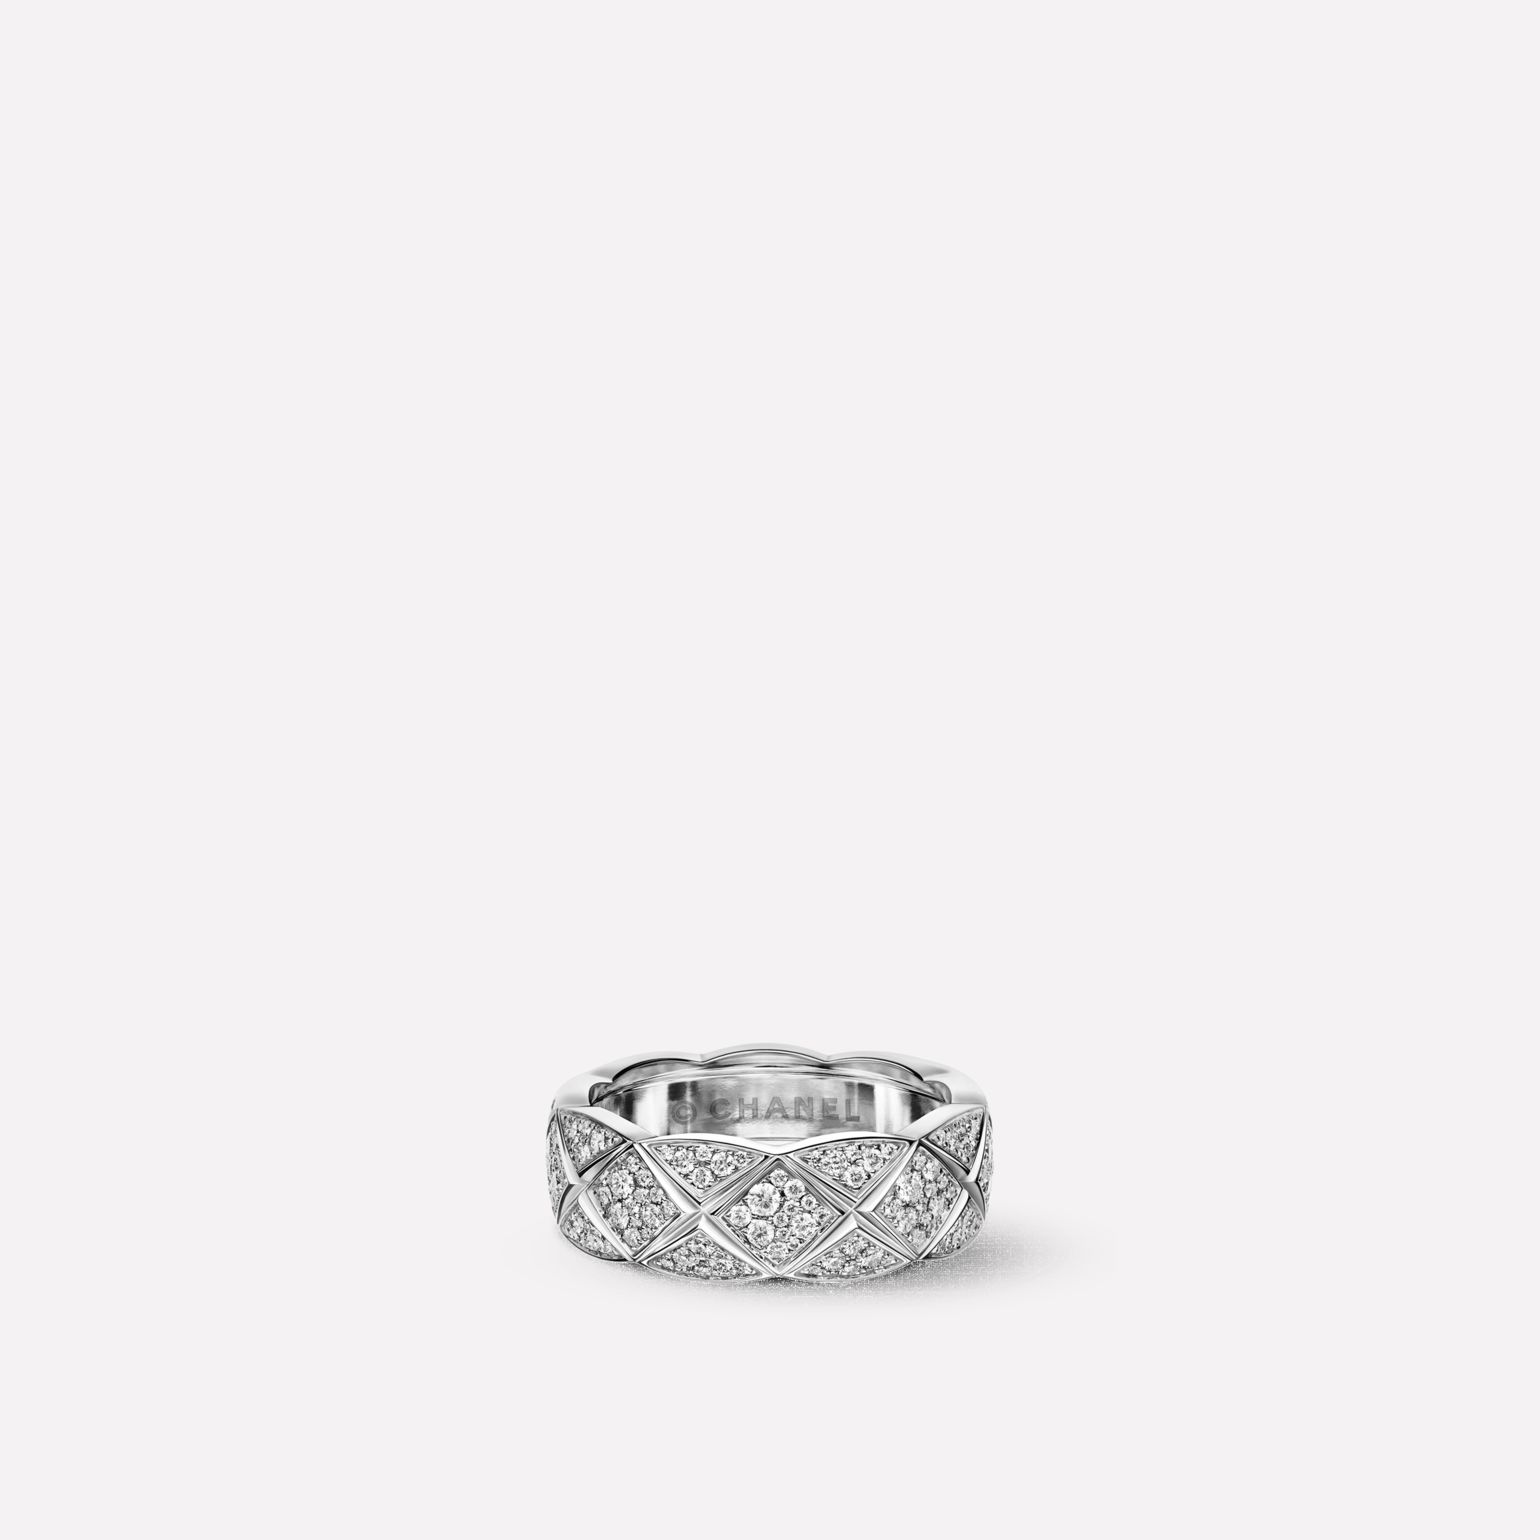 Coco Crush ring Quilted motif ring, small version, in 18K white gold, all diamond paved